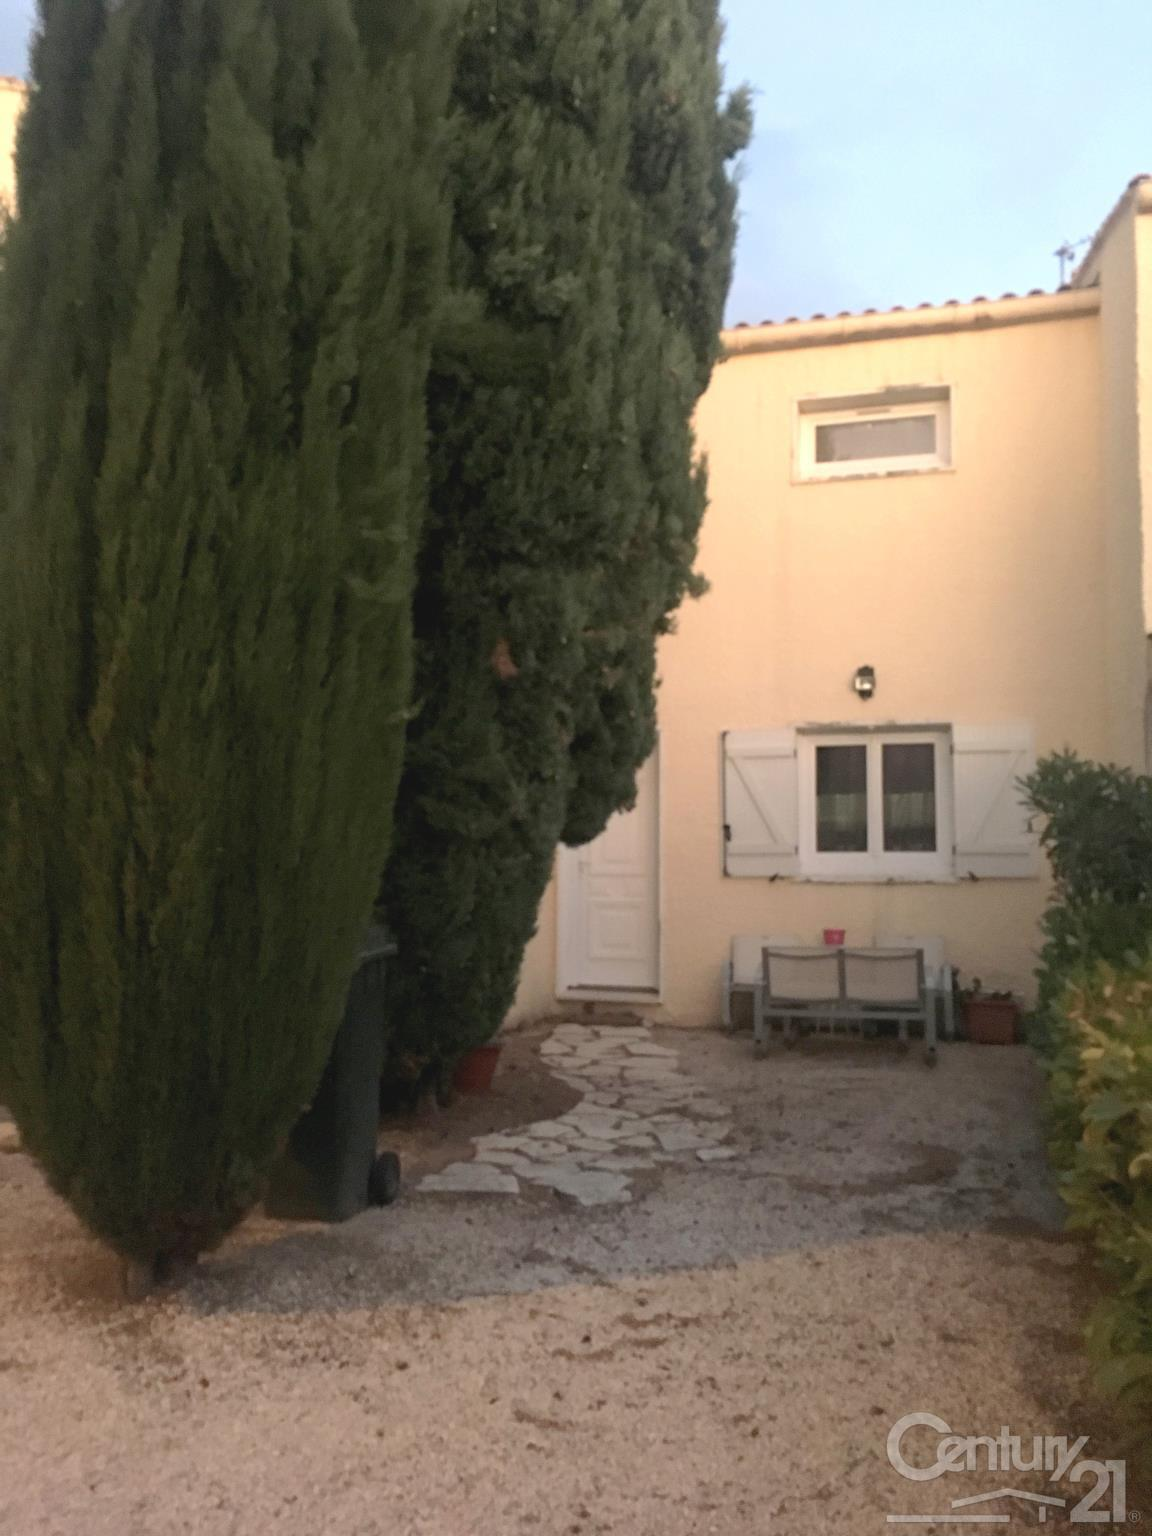 Annonce location maison salon de provence 13300 106 m for Annonce de location de maison